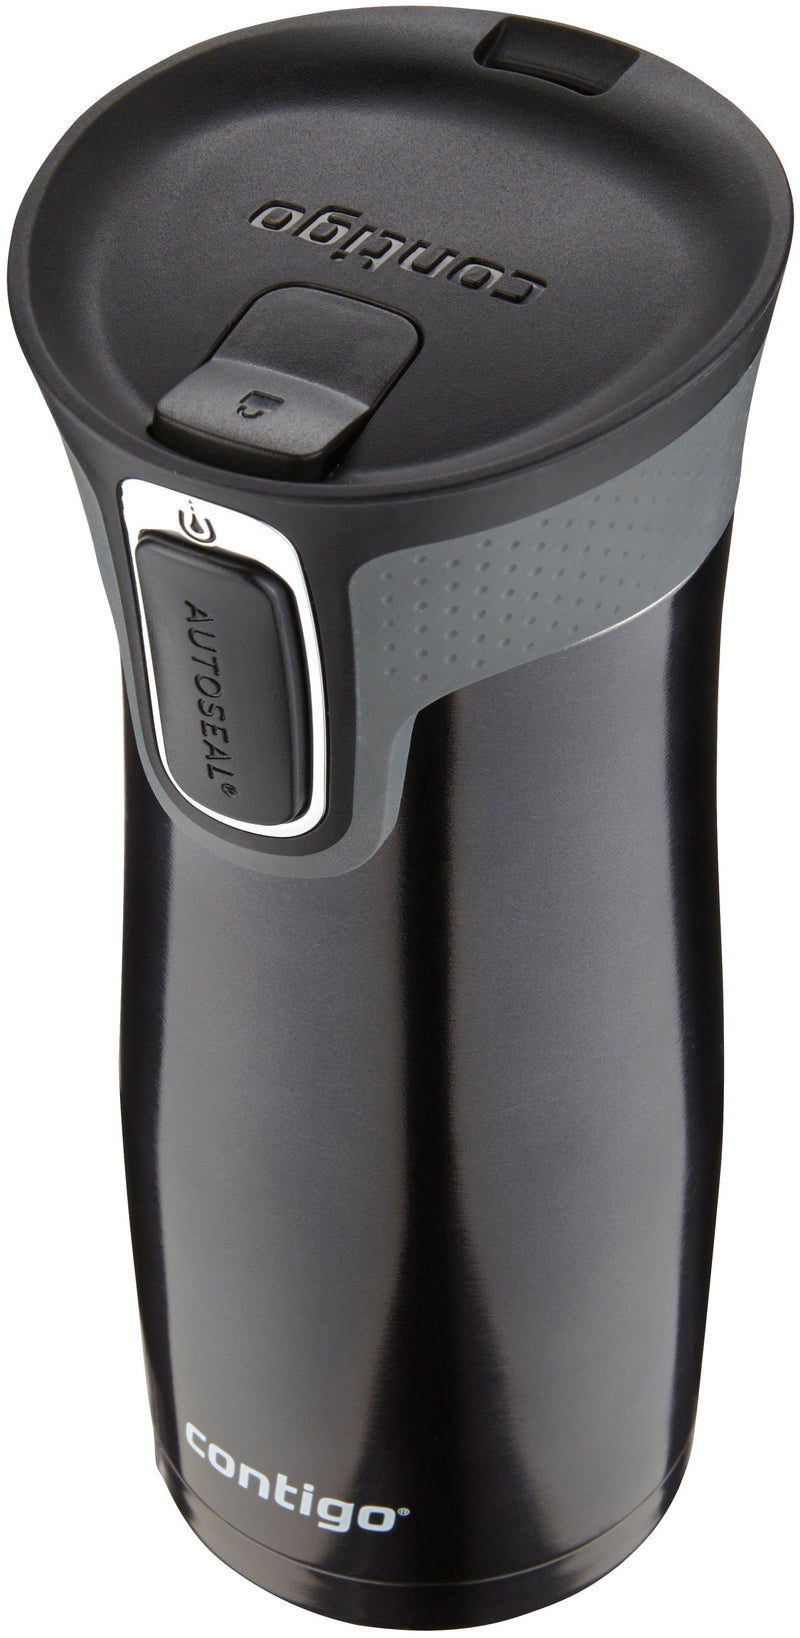 Contigo West Loop 2.0 16oz Stainless Steel Travel Mug-Black | Kipe it